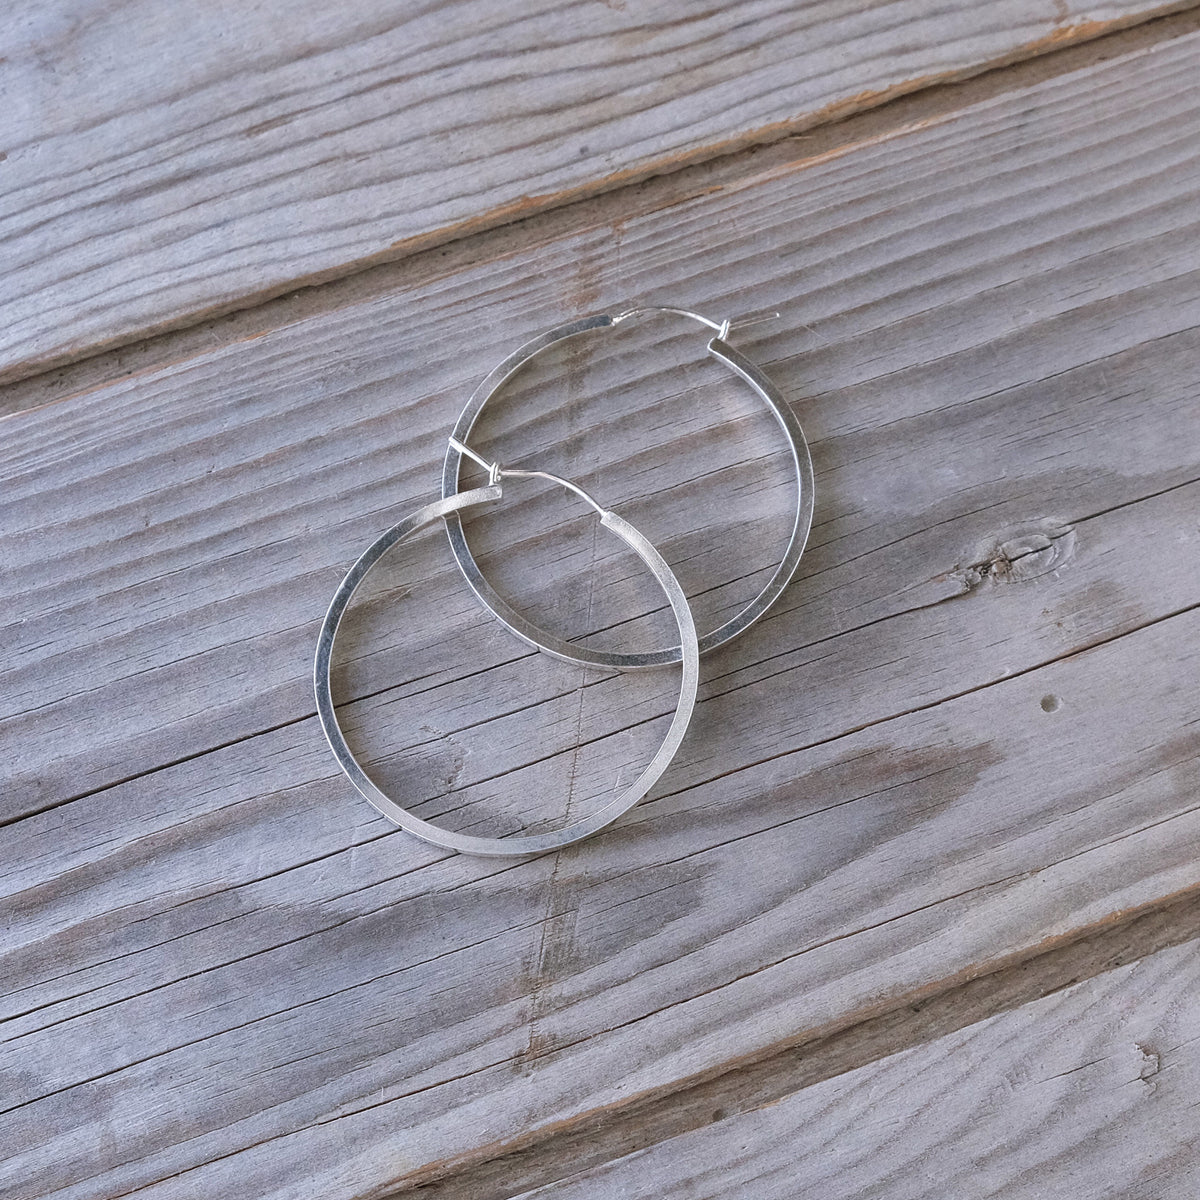 Geometric Sterling Silver Hoop Earrings - Glass Sky Jewelry - Handmade in Columbus Ohio by artist Andrea Kaiser